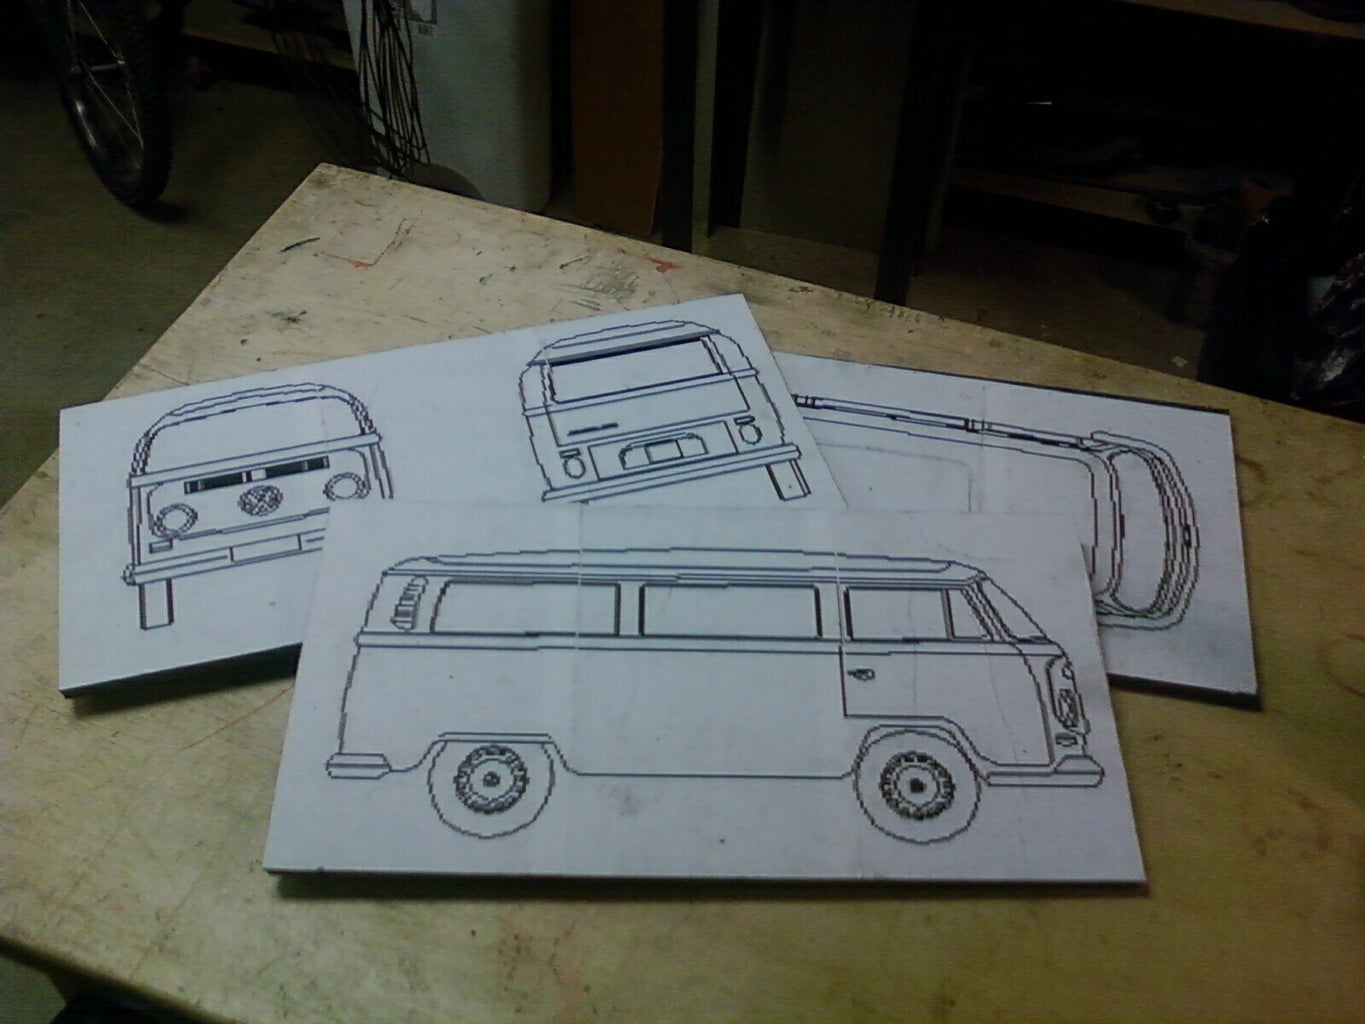 Drawing Your Car (or Printing a Plan)